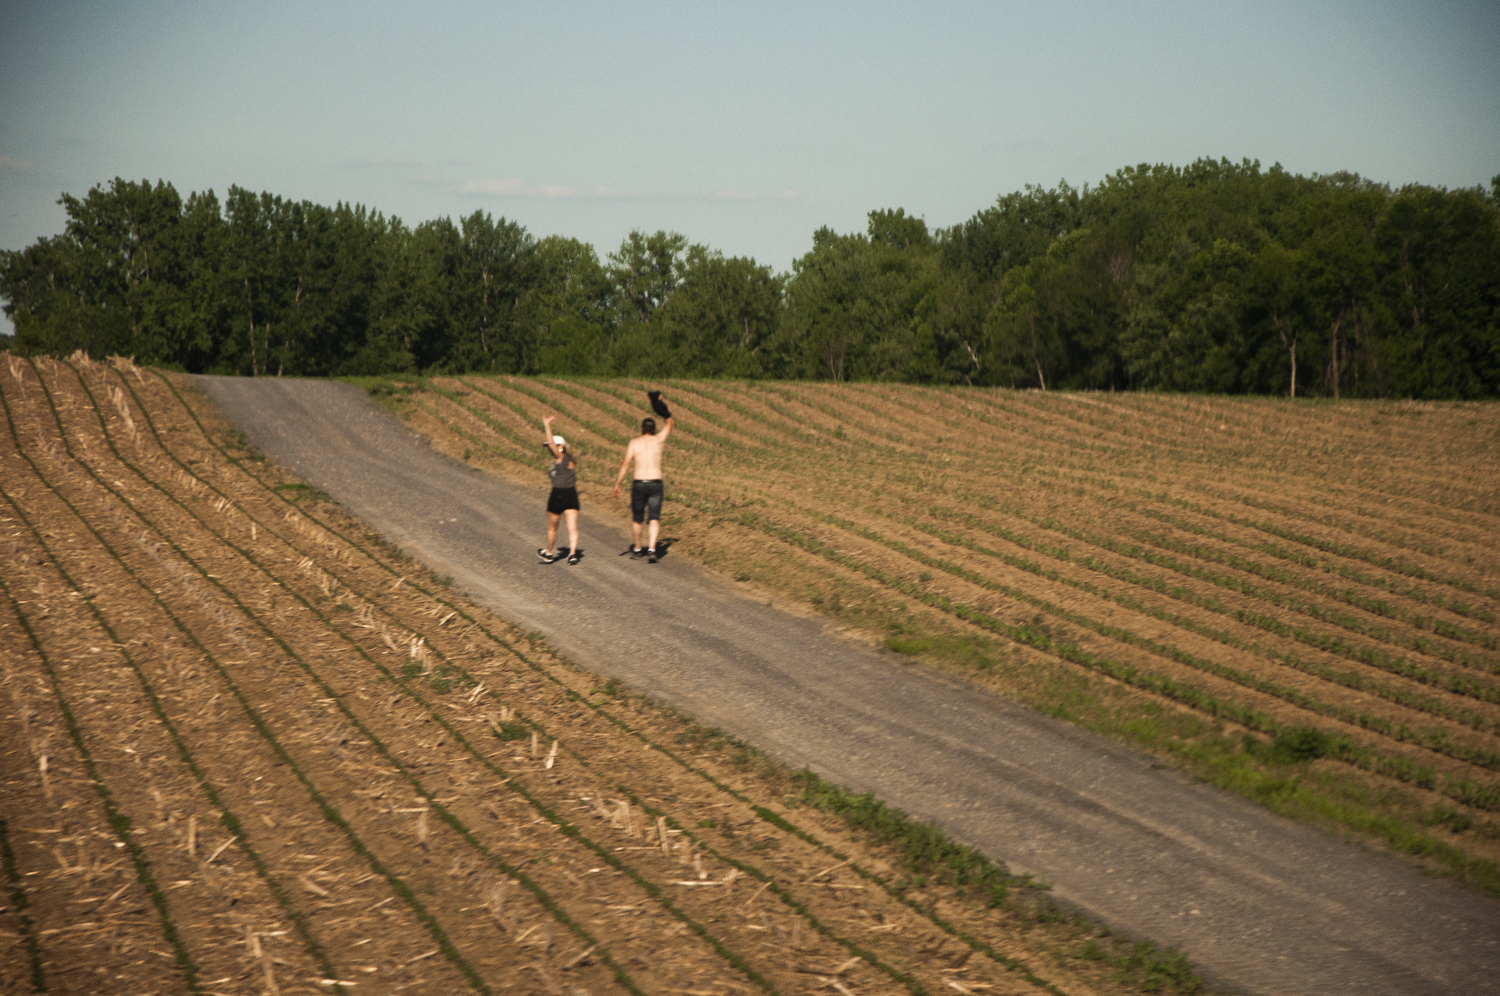 I wanted to get a photo of this couple walking down the road. Ironically, the moment I lifted the camera to shoot, they raised their arms to wave. Go figure…